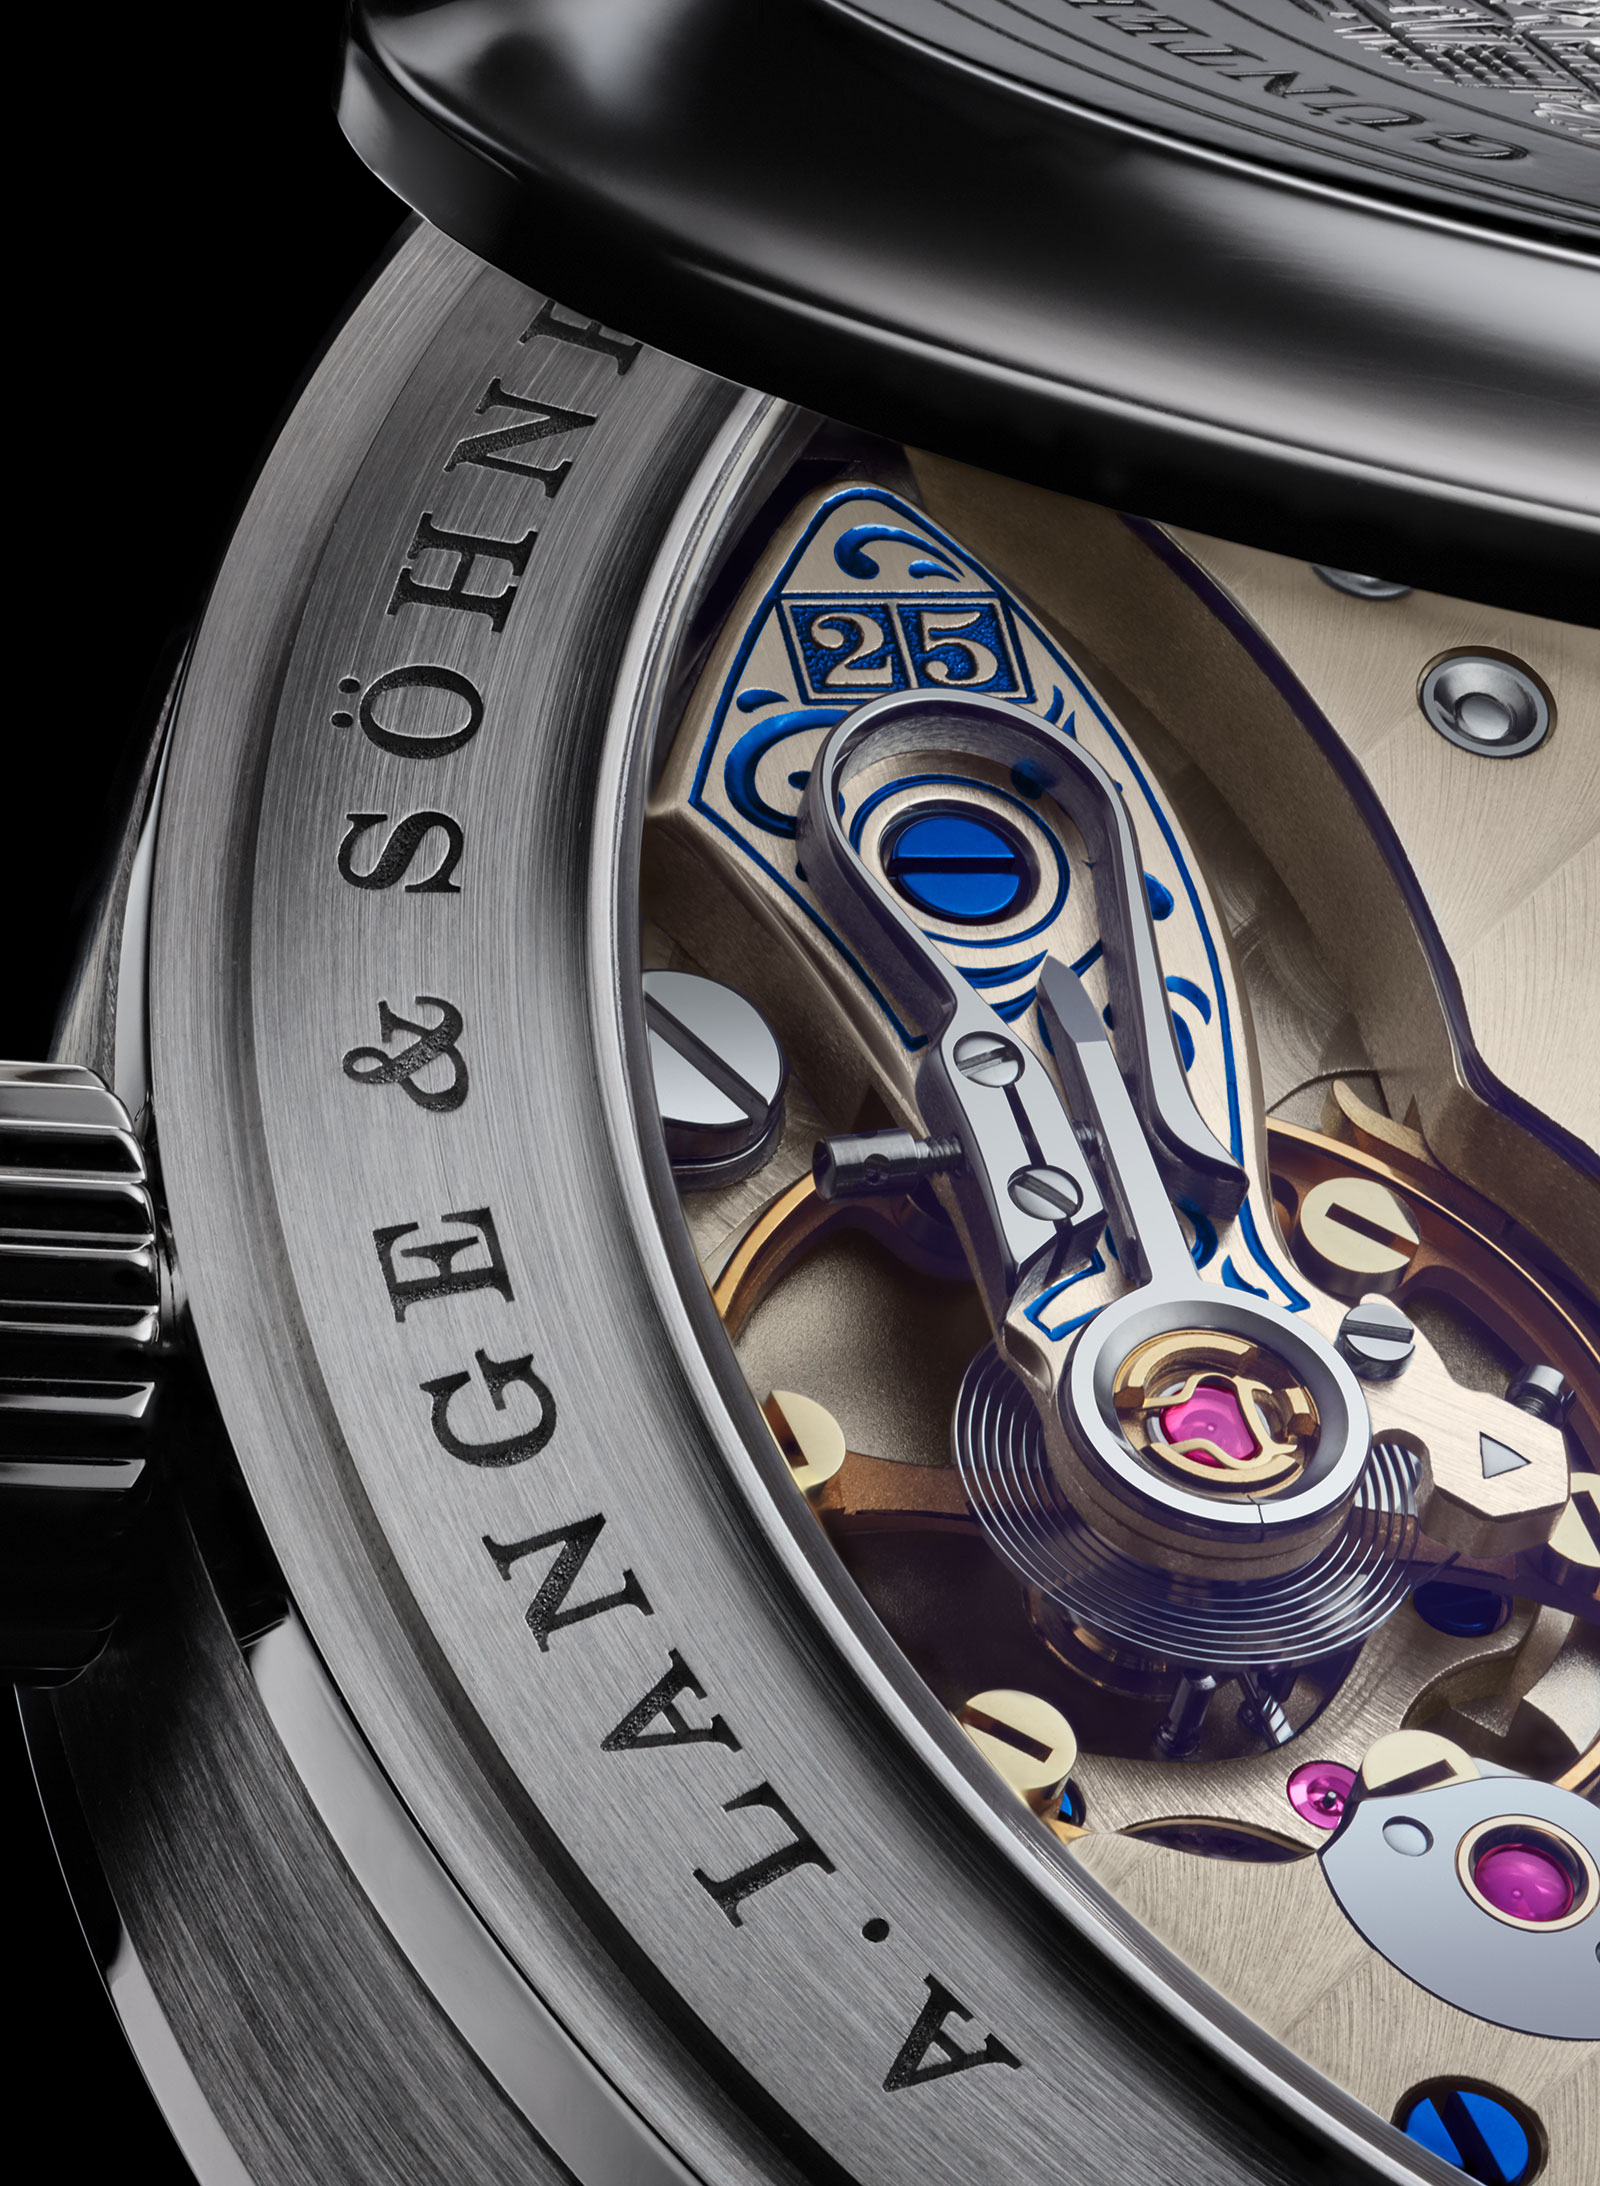 Lange-1-25th-Anniversary-watch-6-1